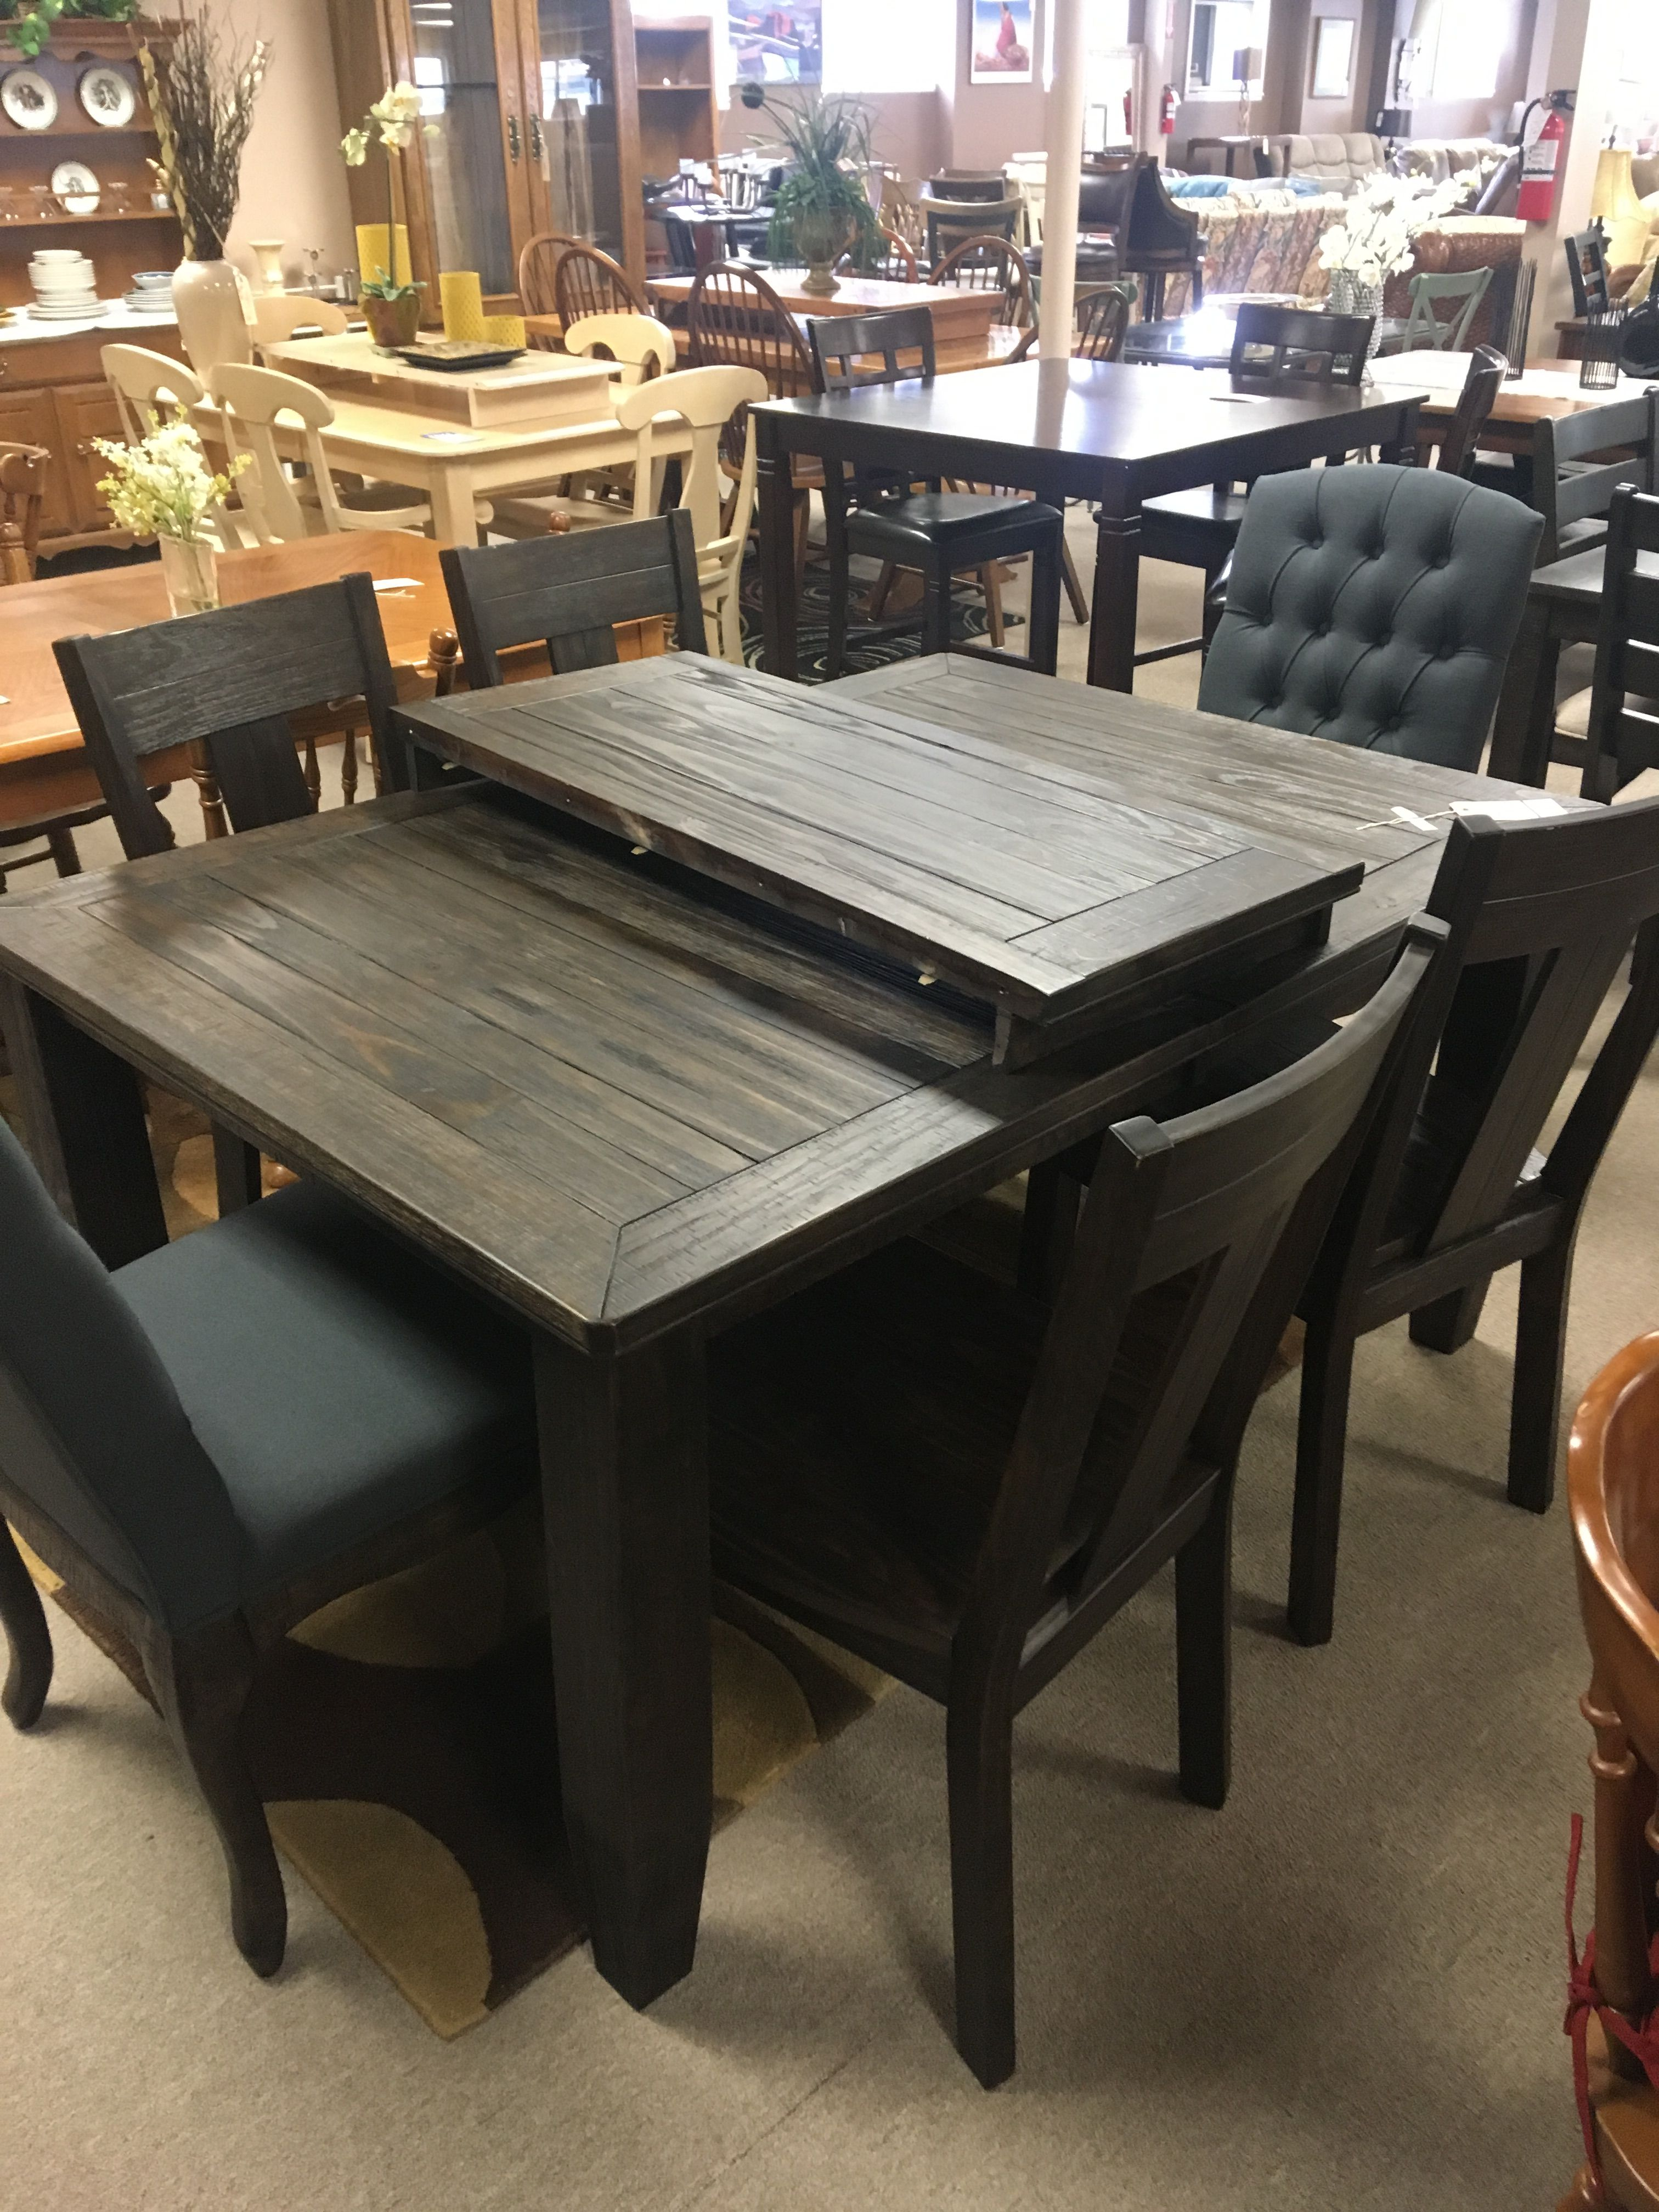 Ashley Furniture Dining Table Set W 6 Chairs Ashley Furniture